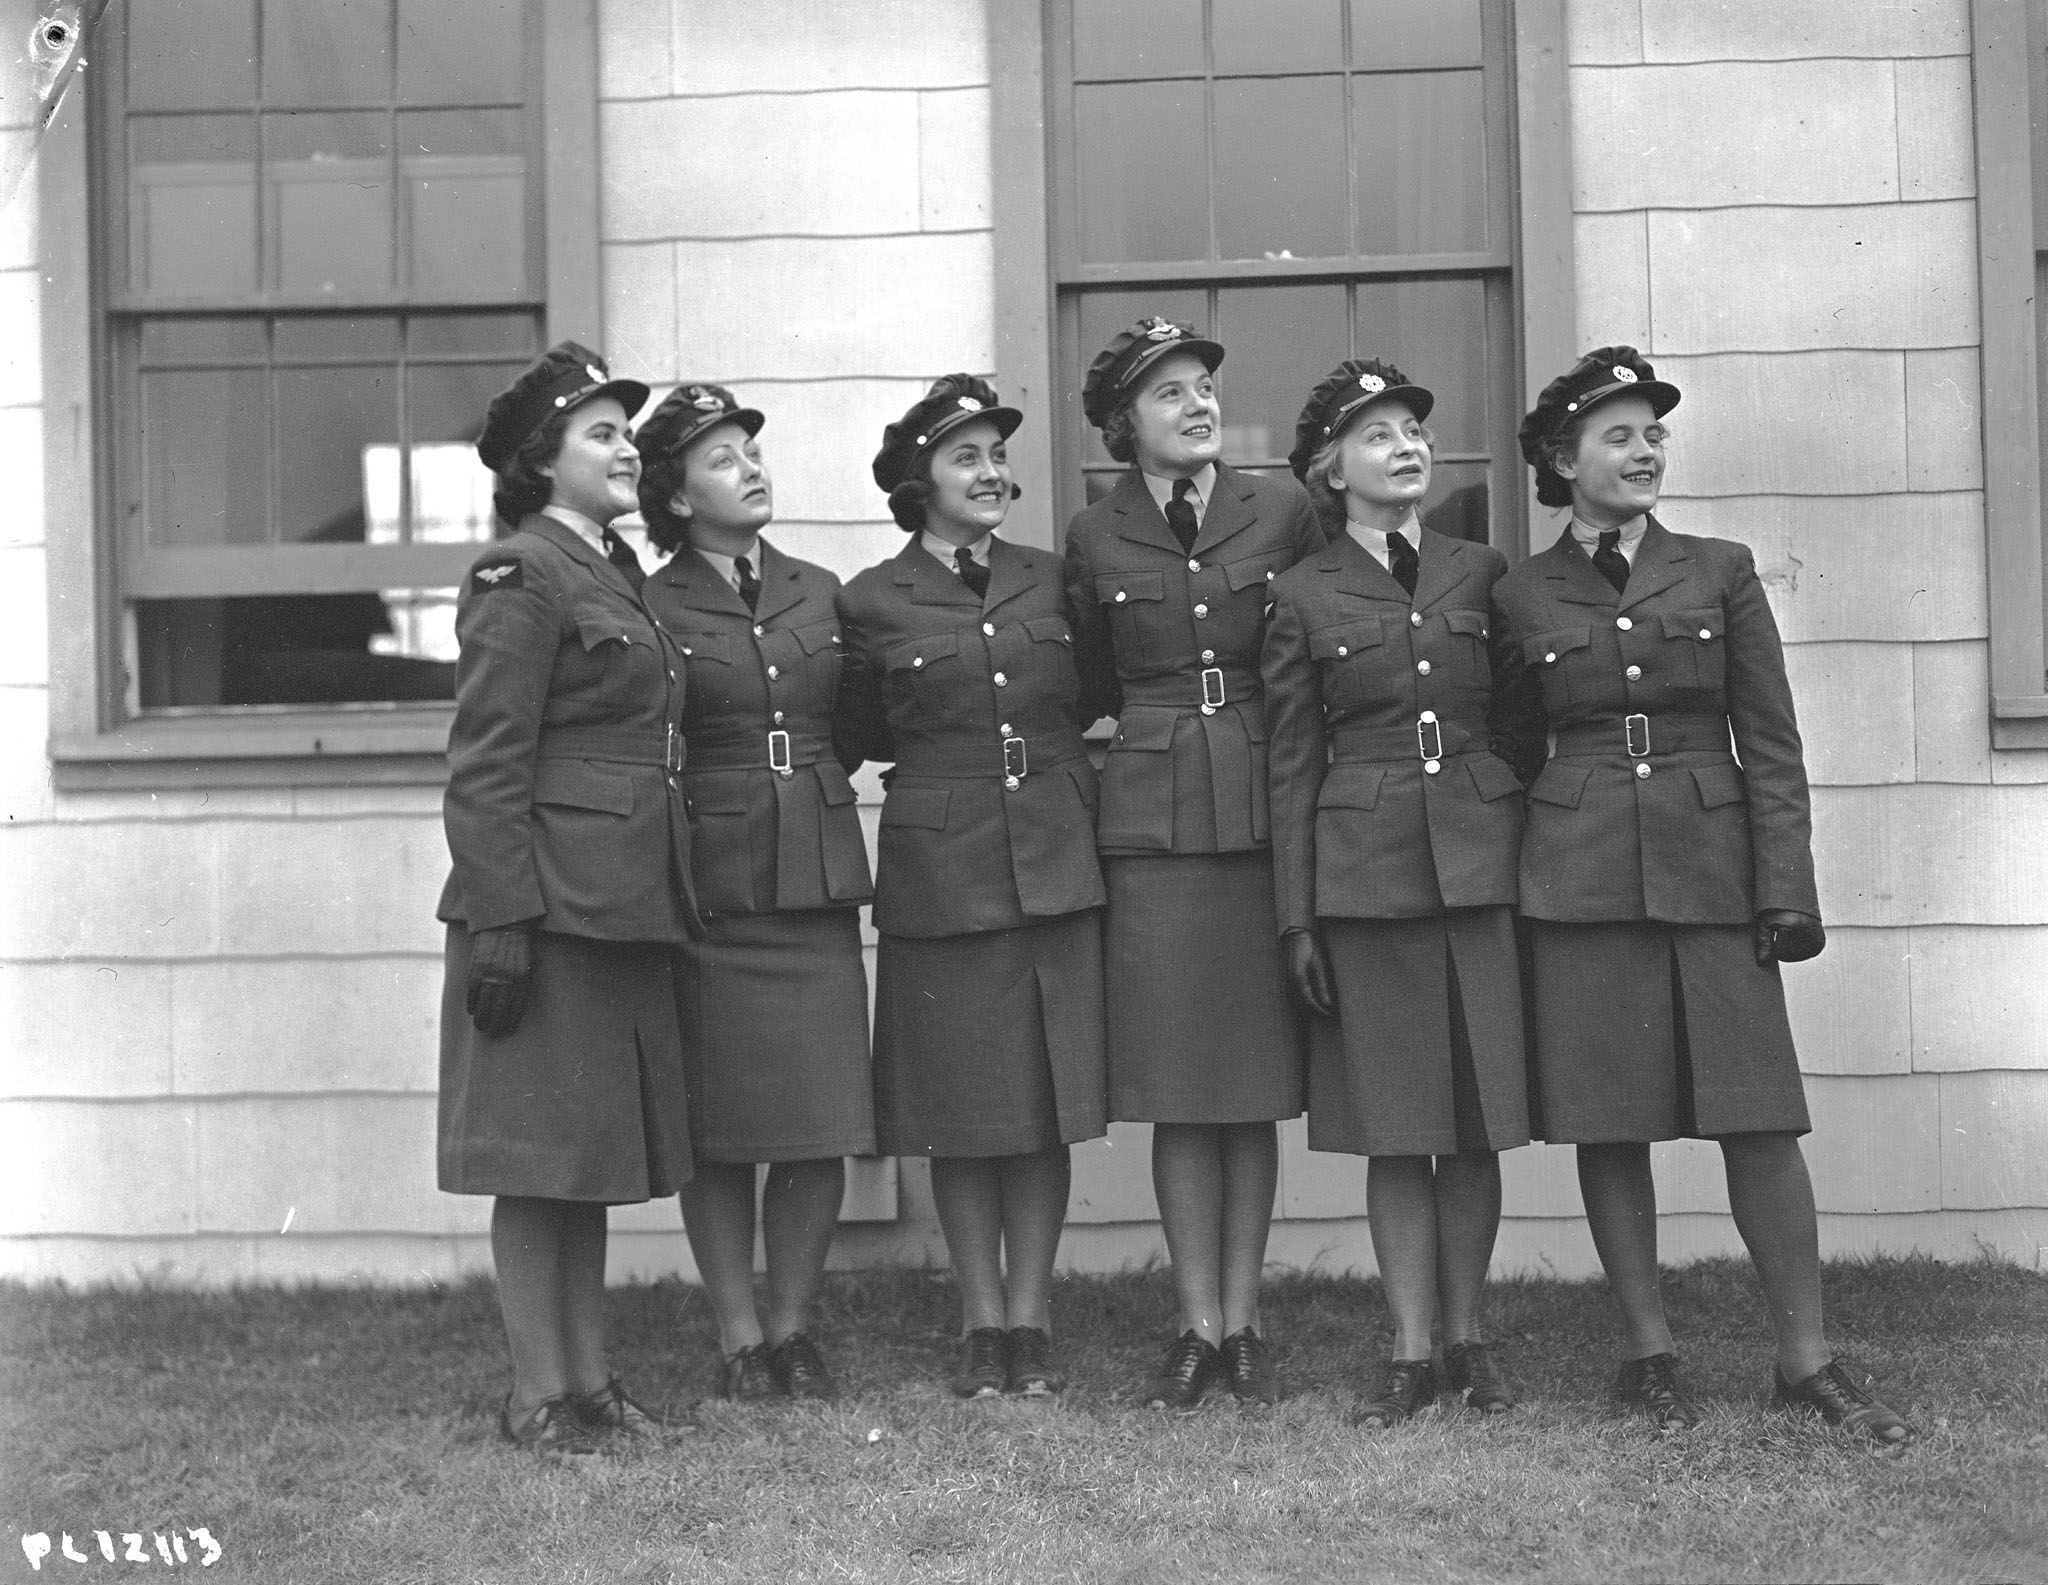 A black-and-white photo of six uniformed women standing in a row with their arms around each other's waists, looking up.